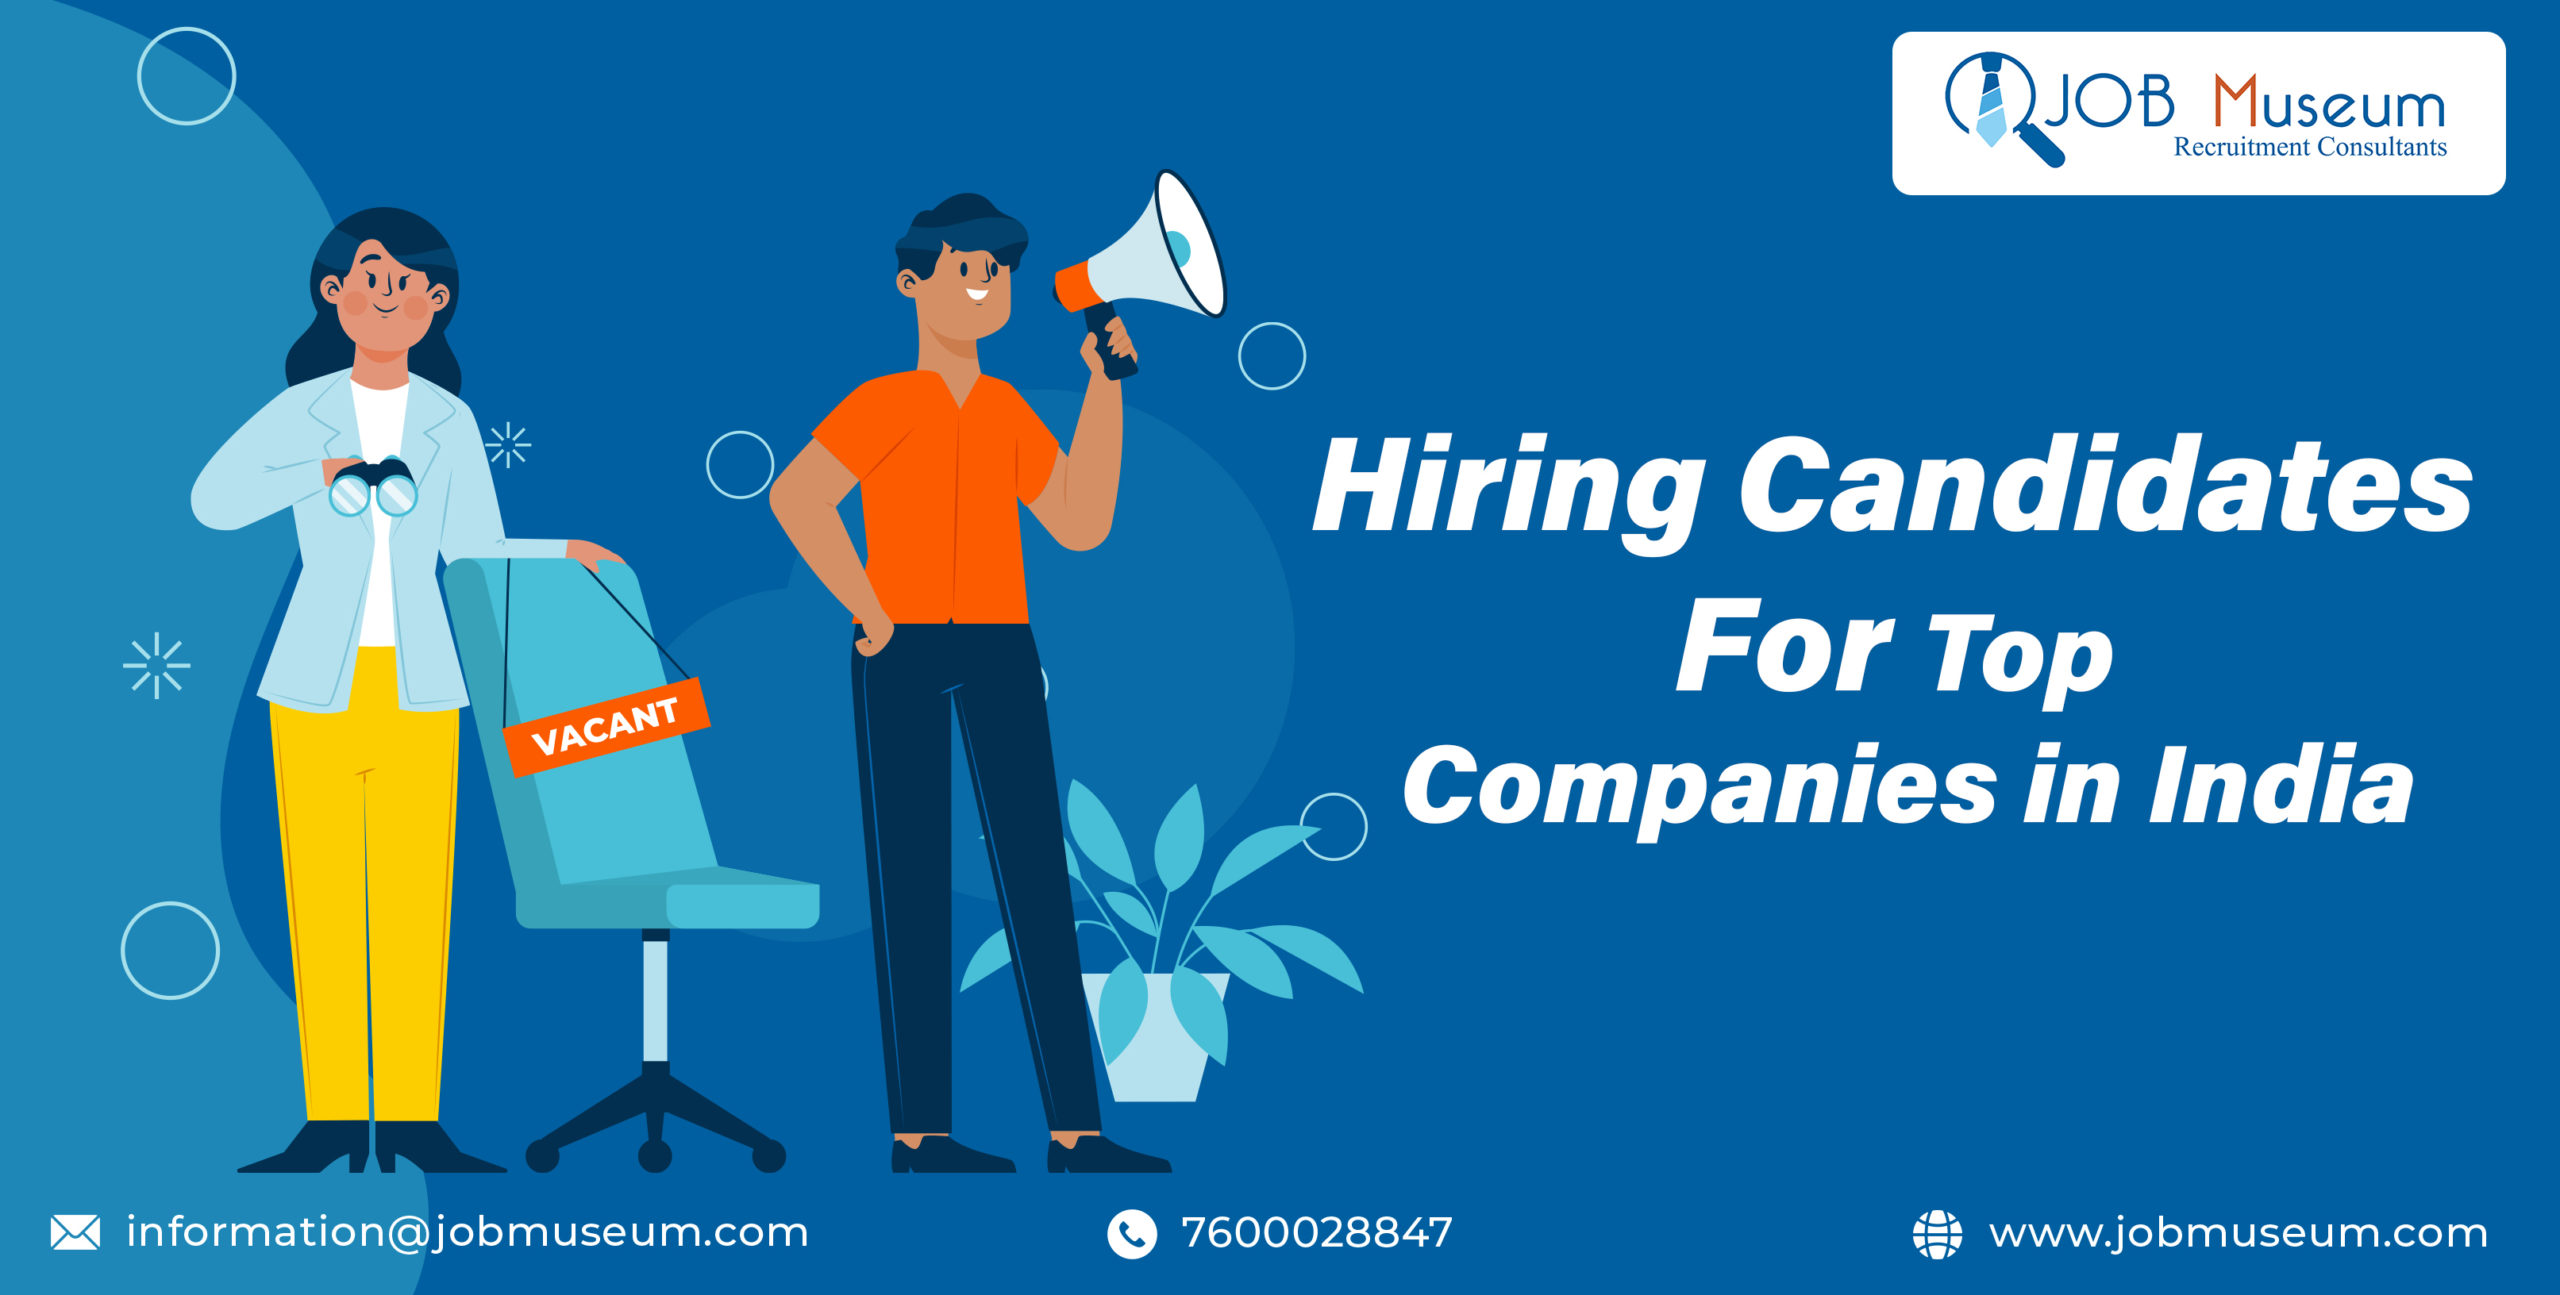 Job Museum Hiring Best Candidates for Top Companies in India